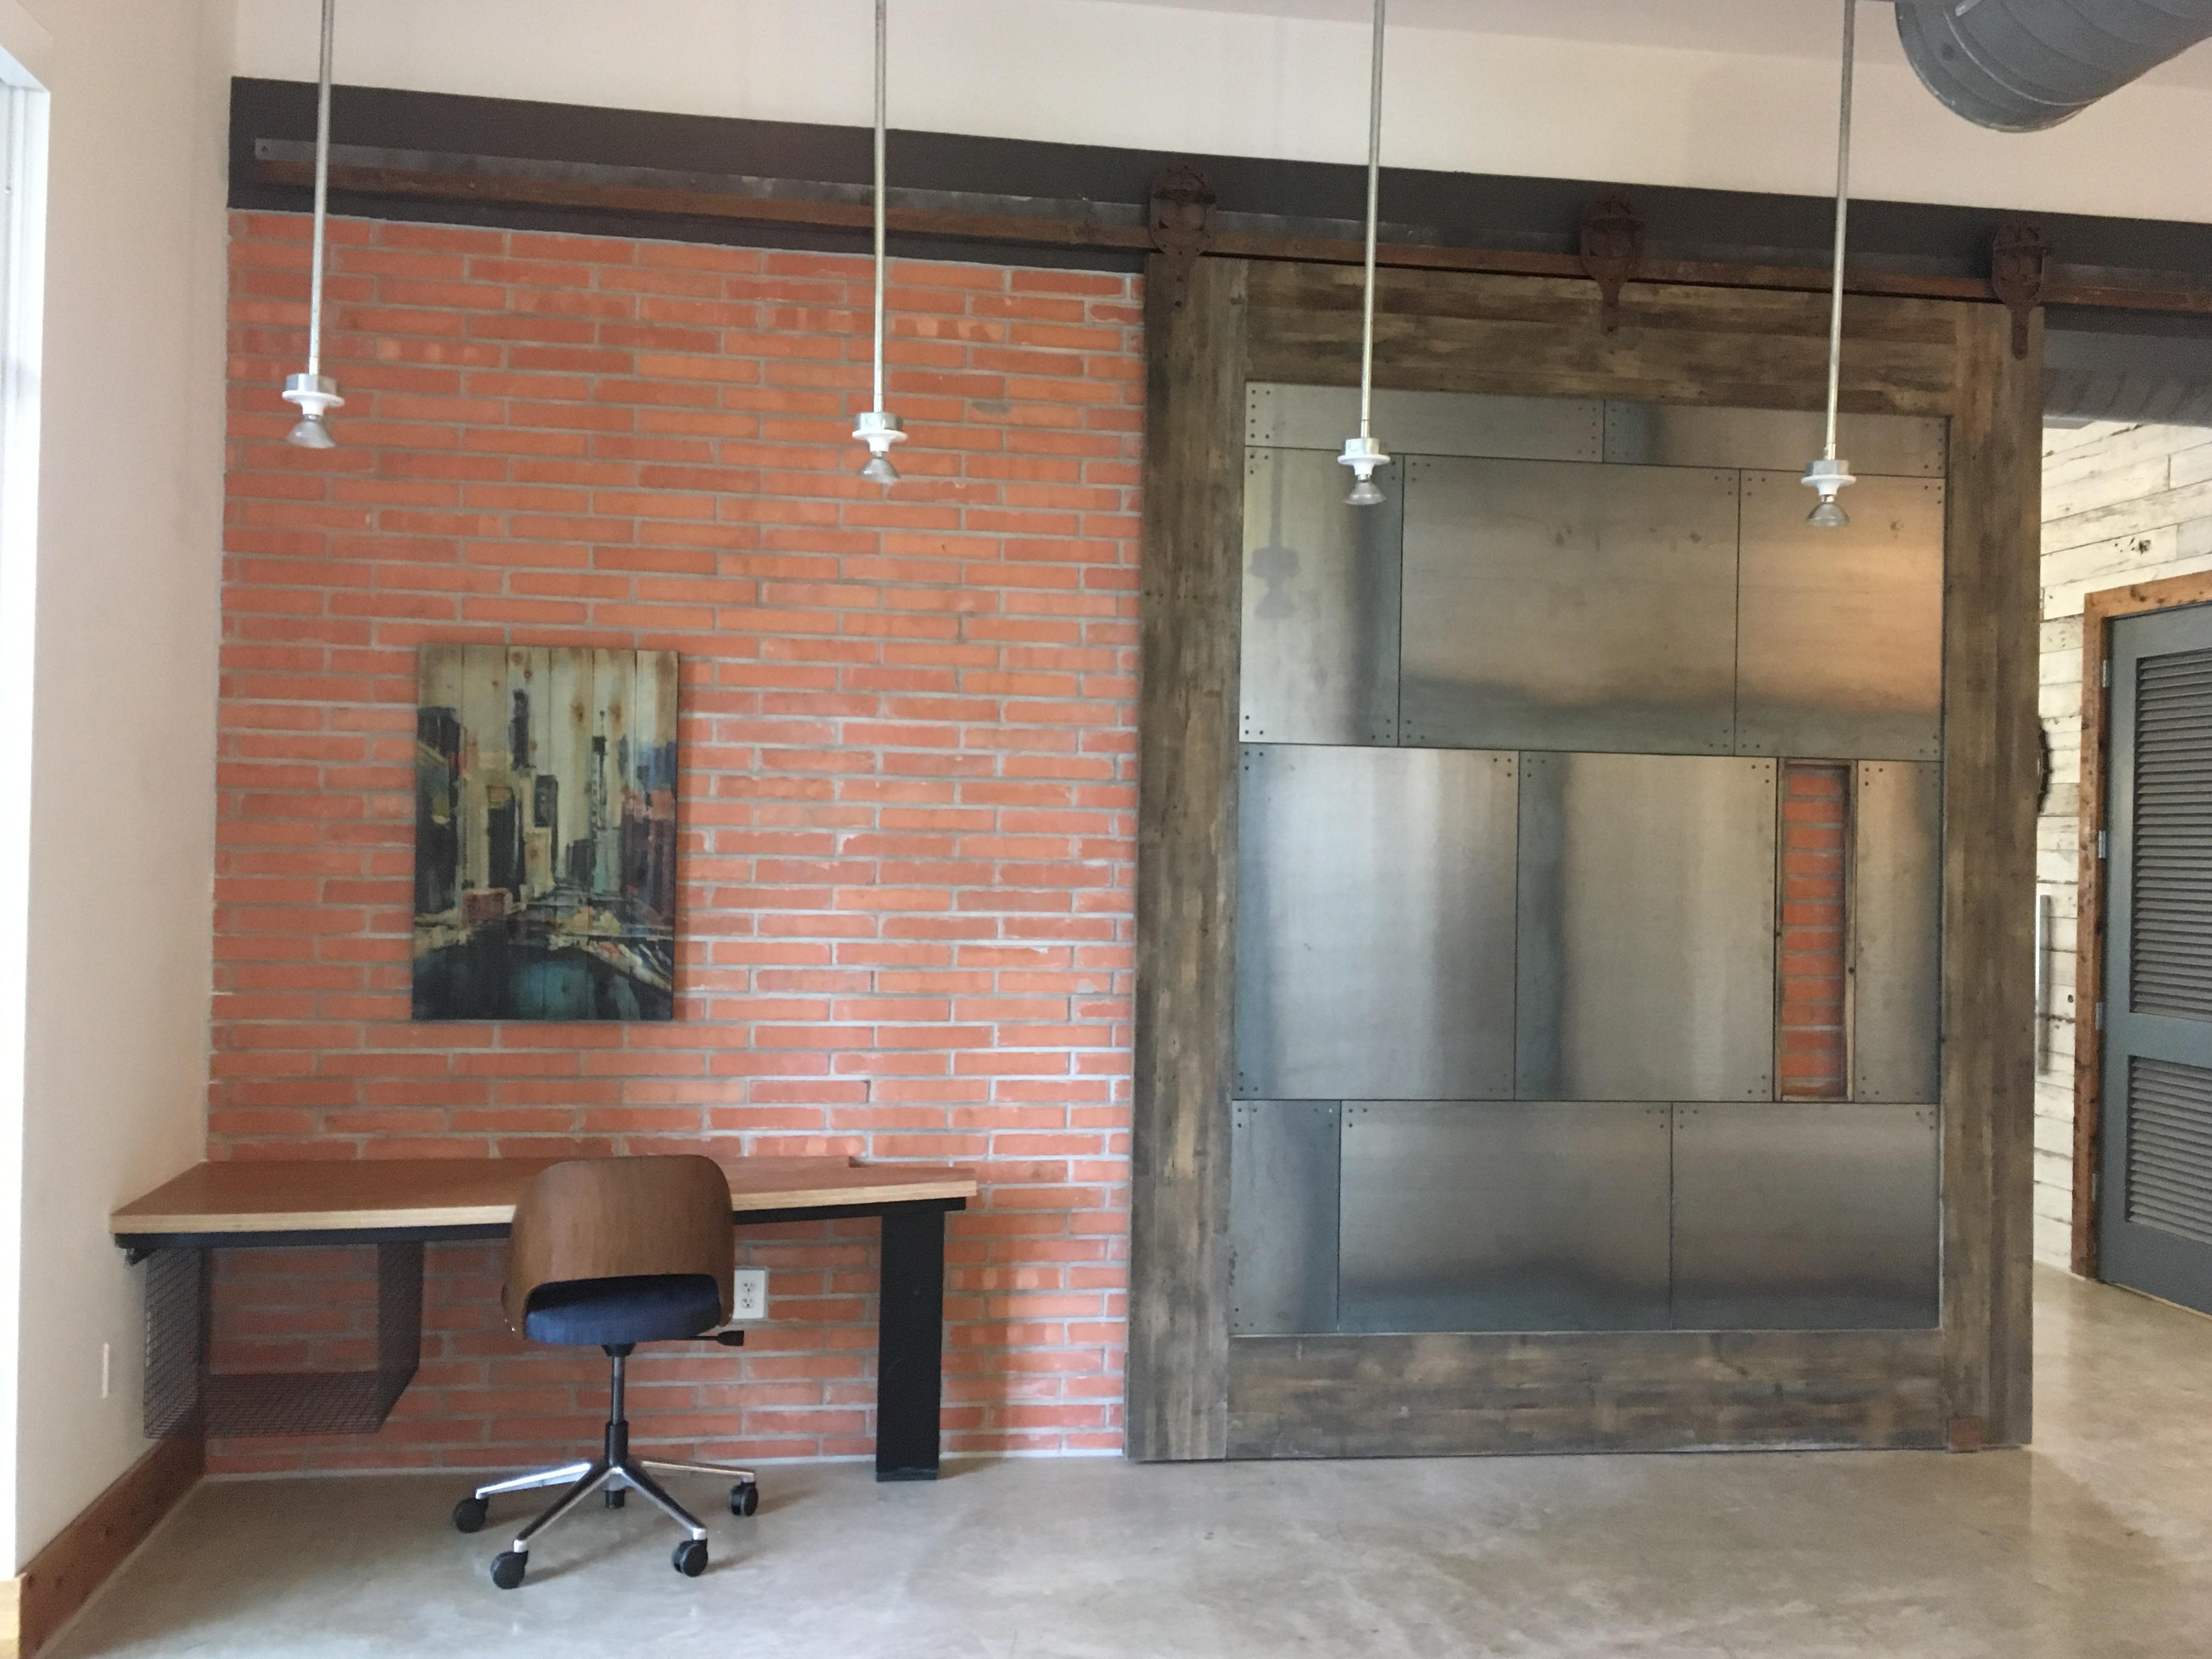 Big Tex Bar door, sliding barn door, Custom sliding barn door, Reclaimed wood & steel sliding barn door, interior door, large interior barn door